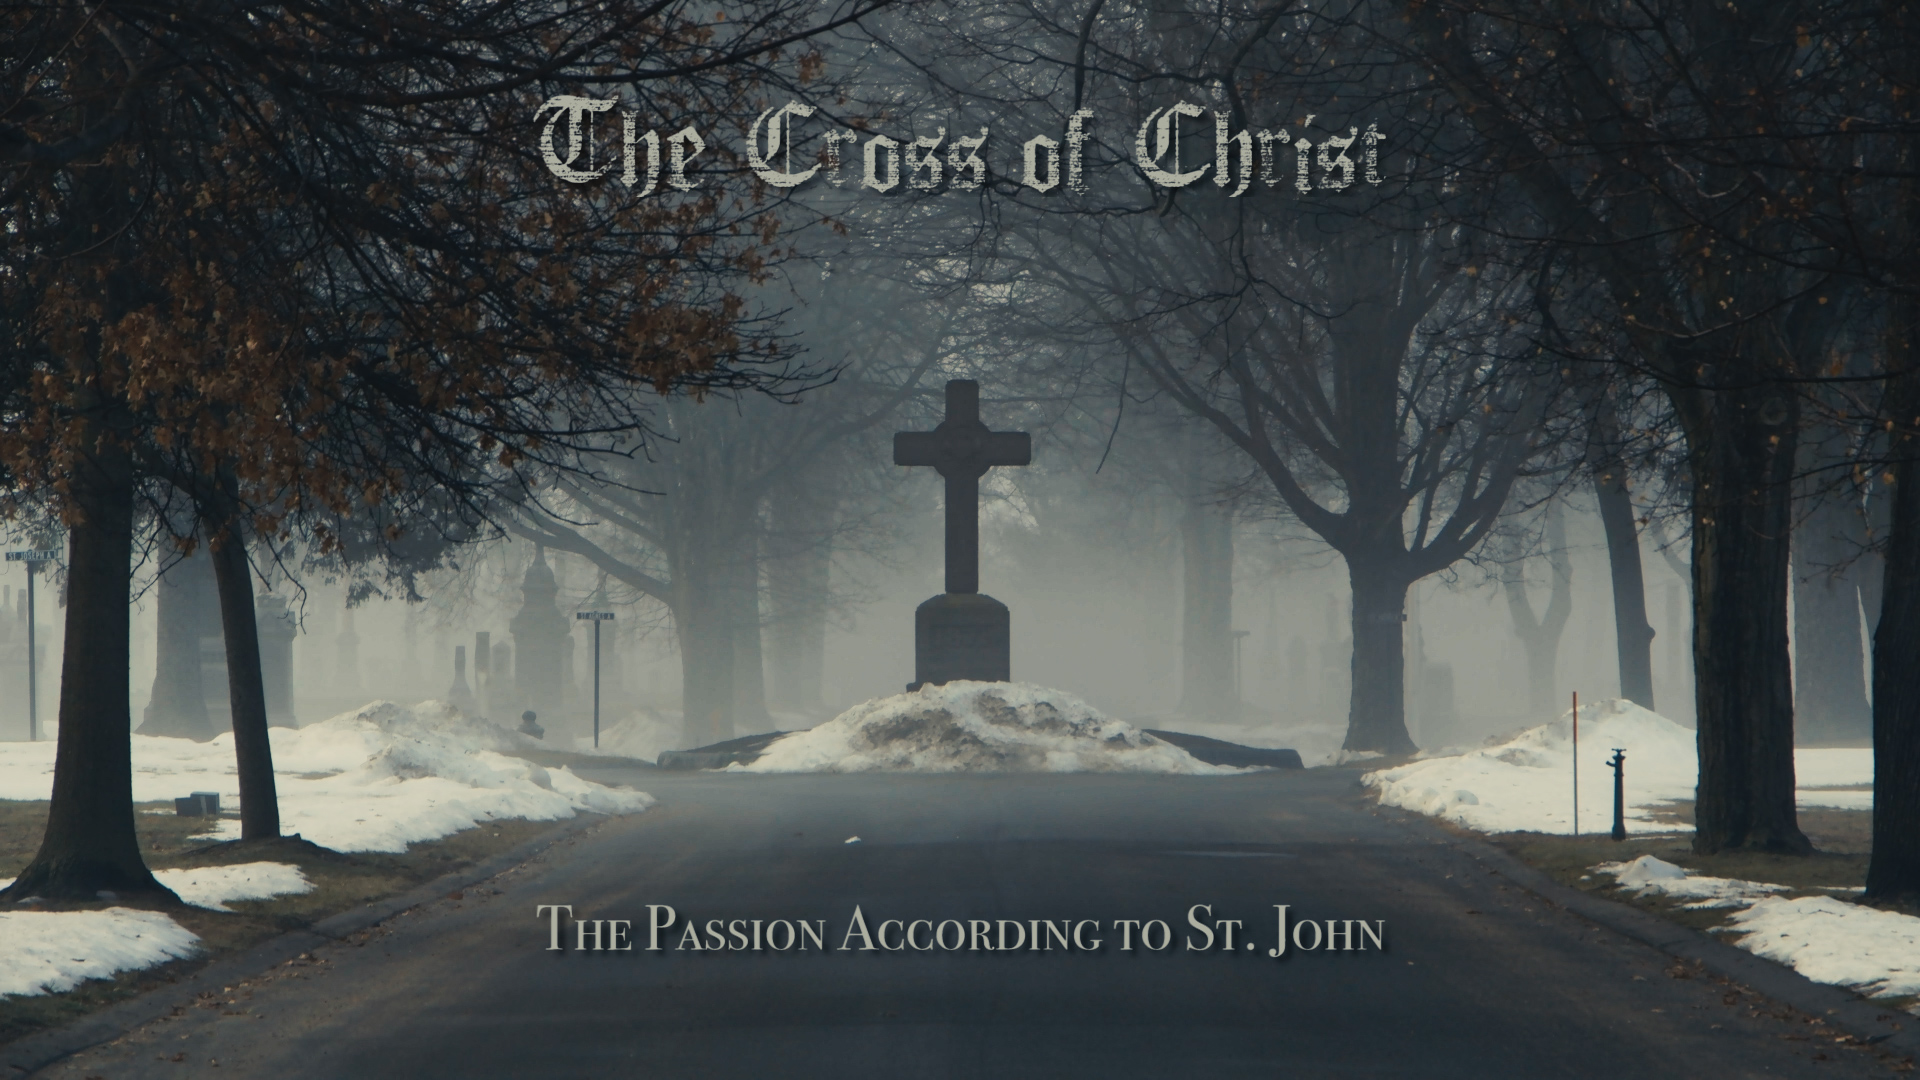 A sermon series considering The Passion according to Saint John (Chapters 18-19)